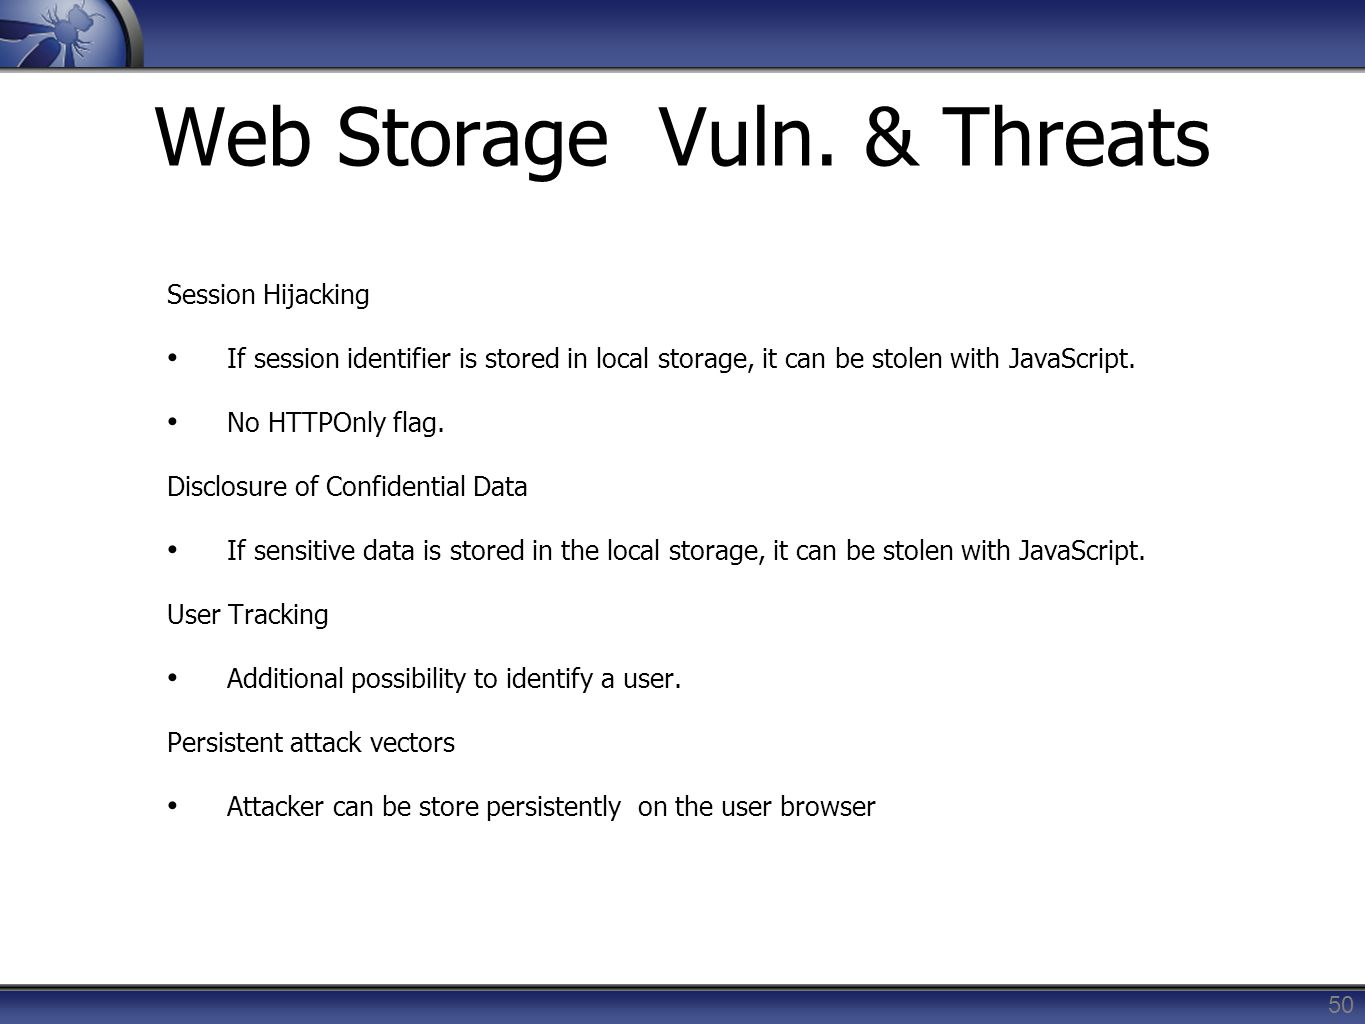 Web Storage Vuln. & Threats